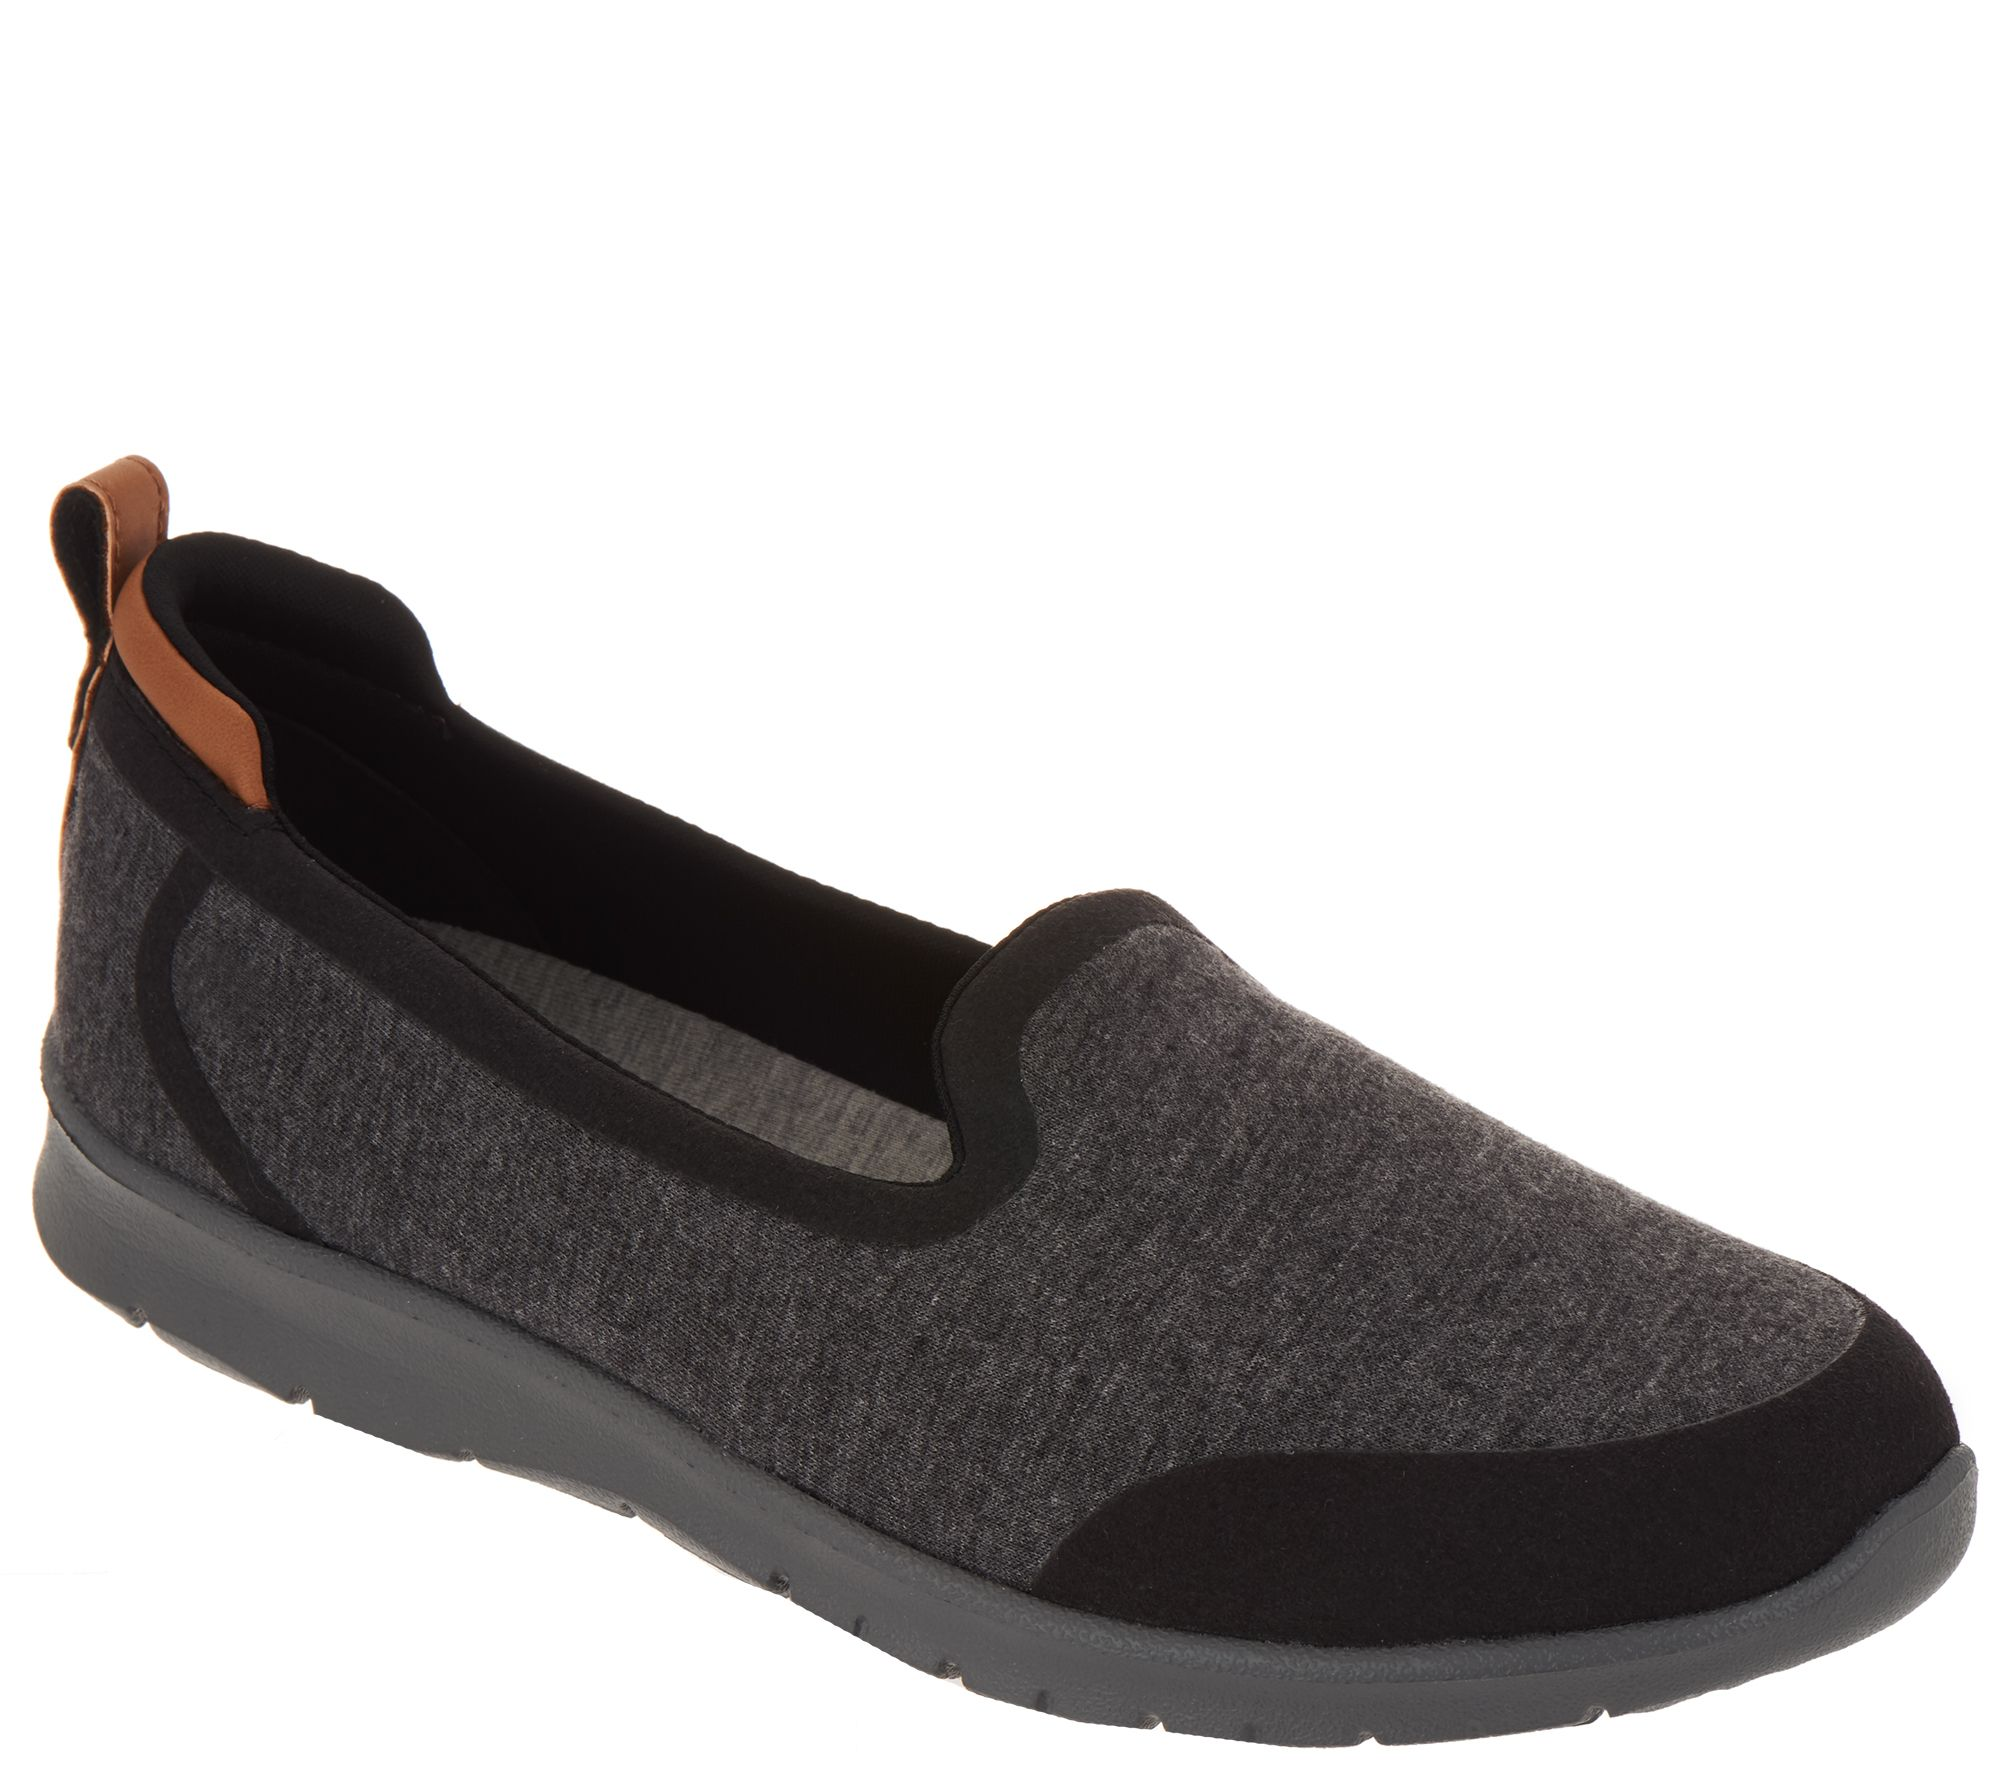 f41c55bd5f7 CLOUDSTEPPERS by Clarks Slip-On Shoes - Step Allena Lo - Page 1 — QVC.com